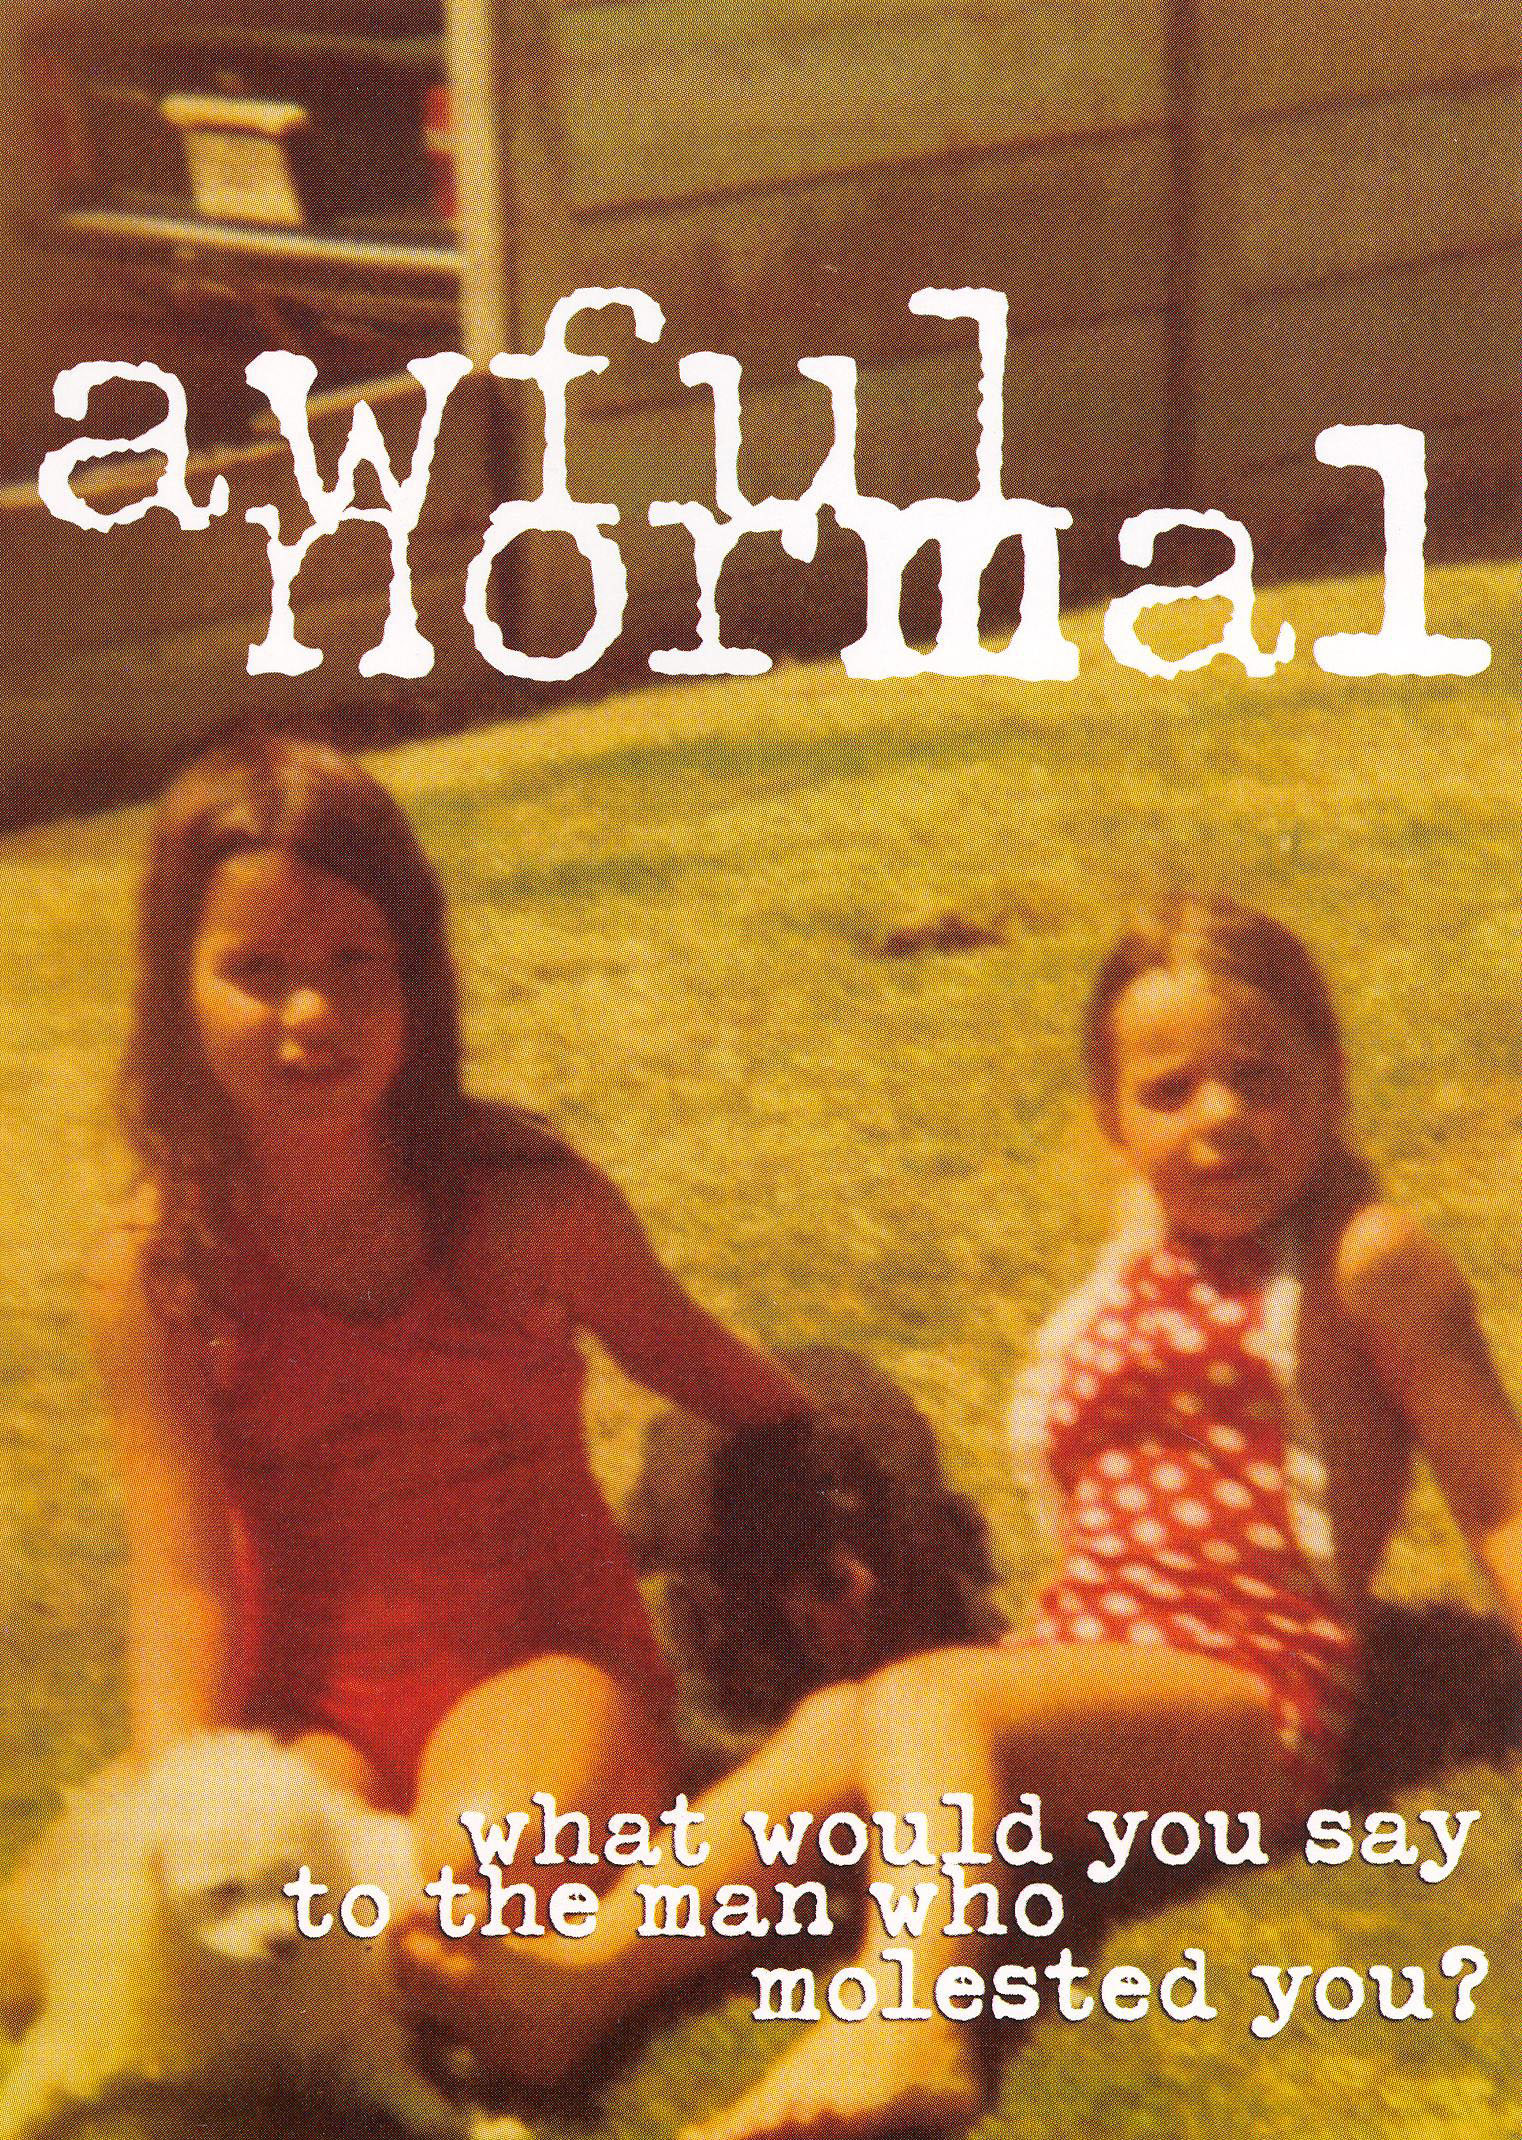 Awful Normal